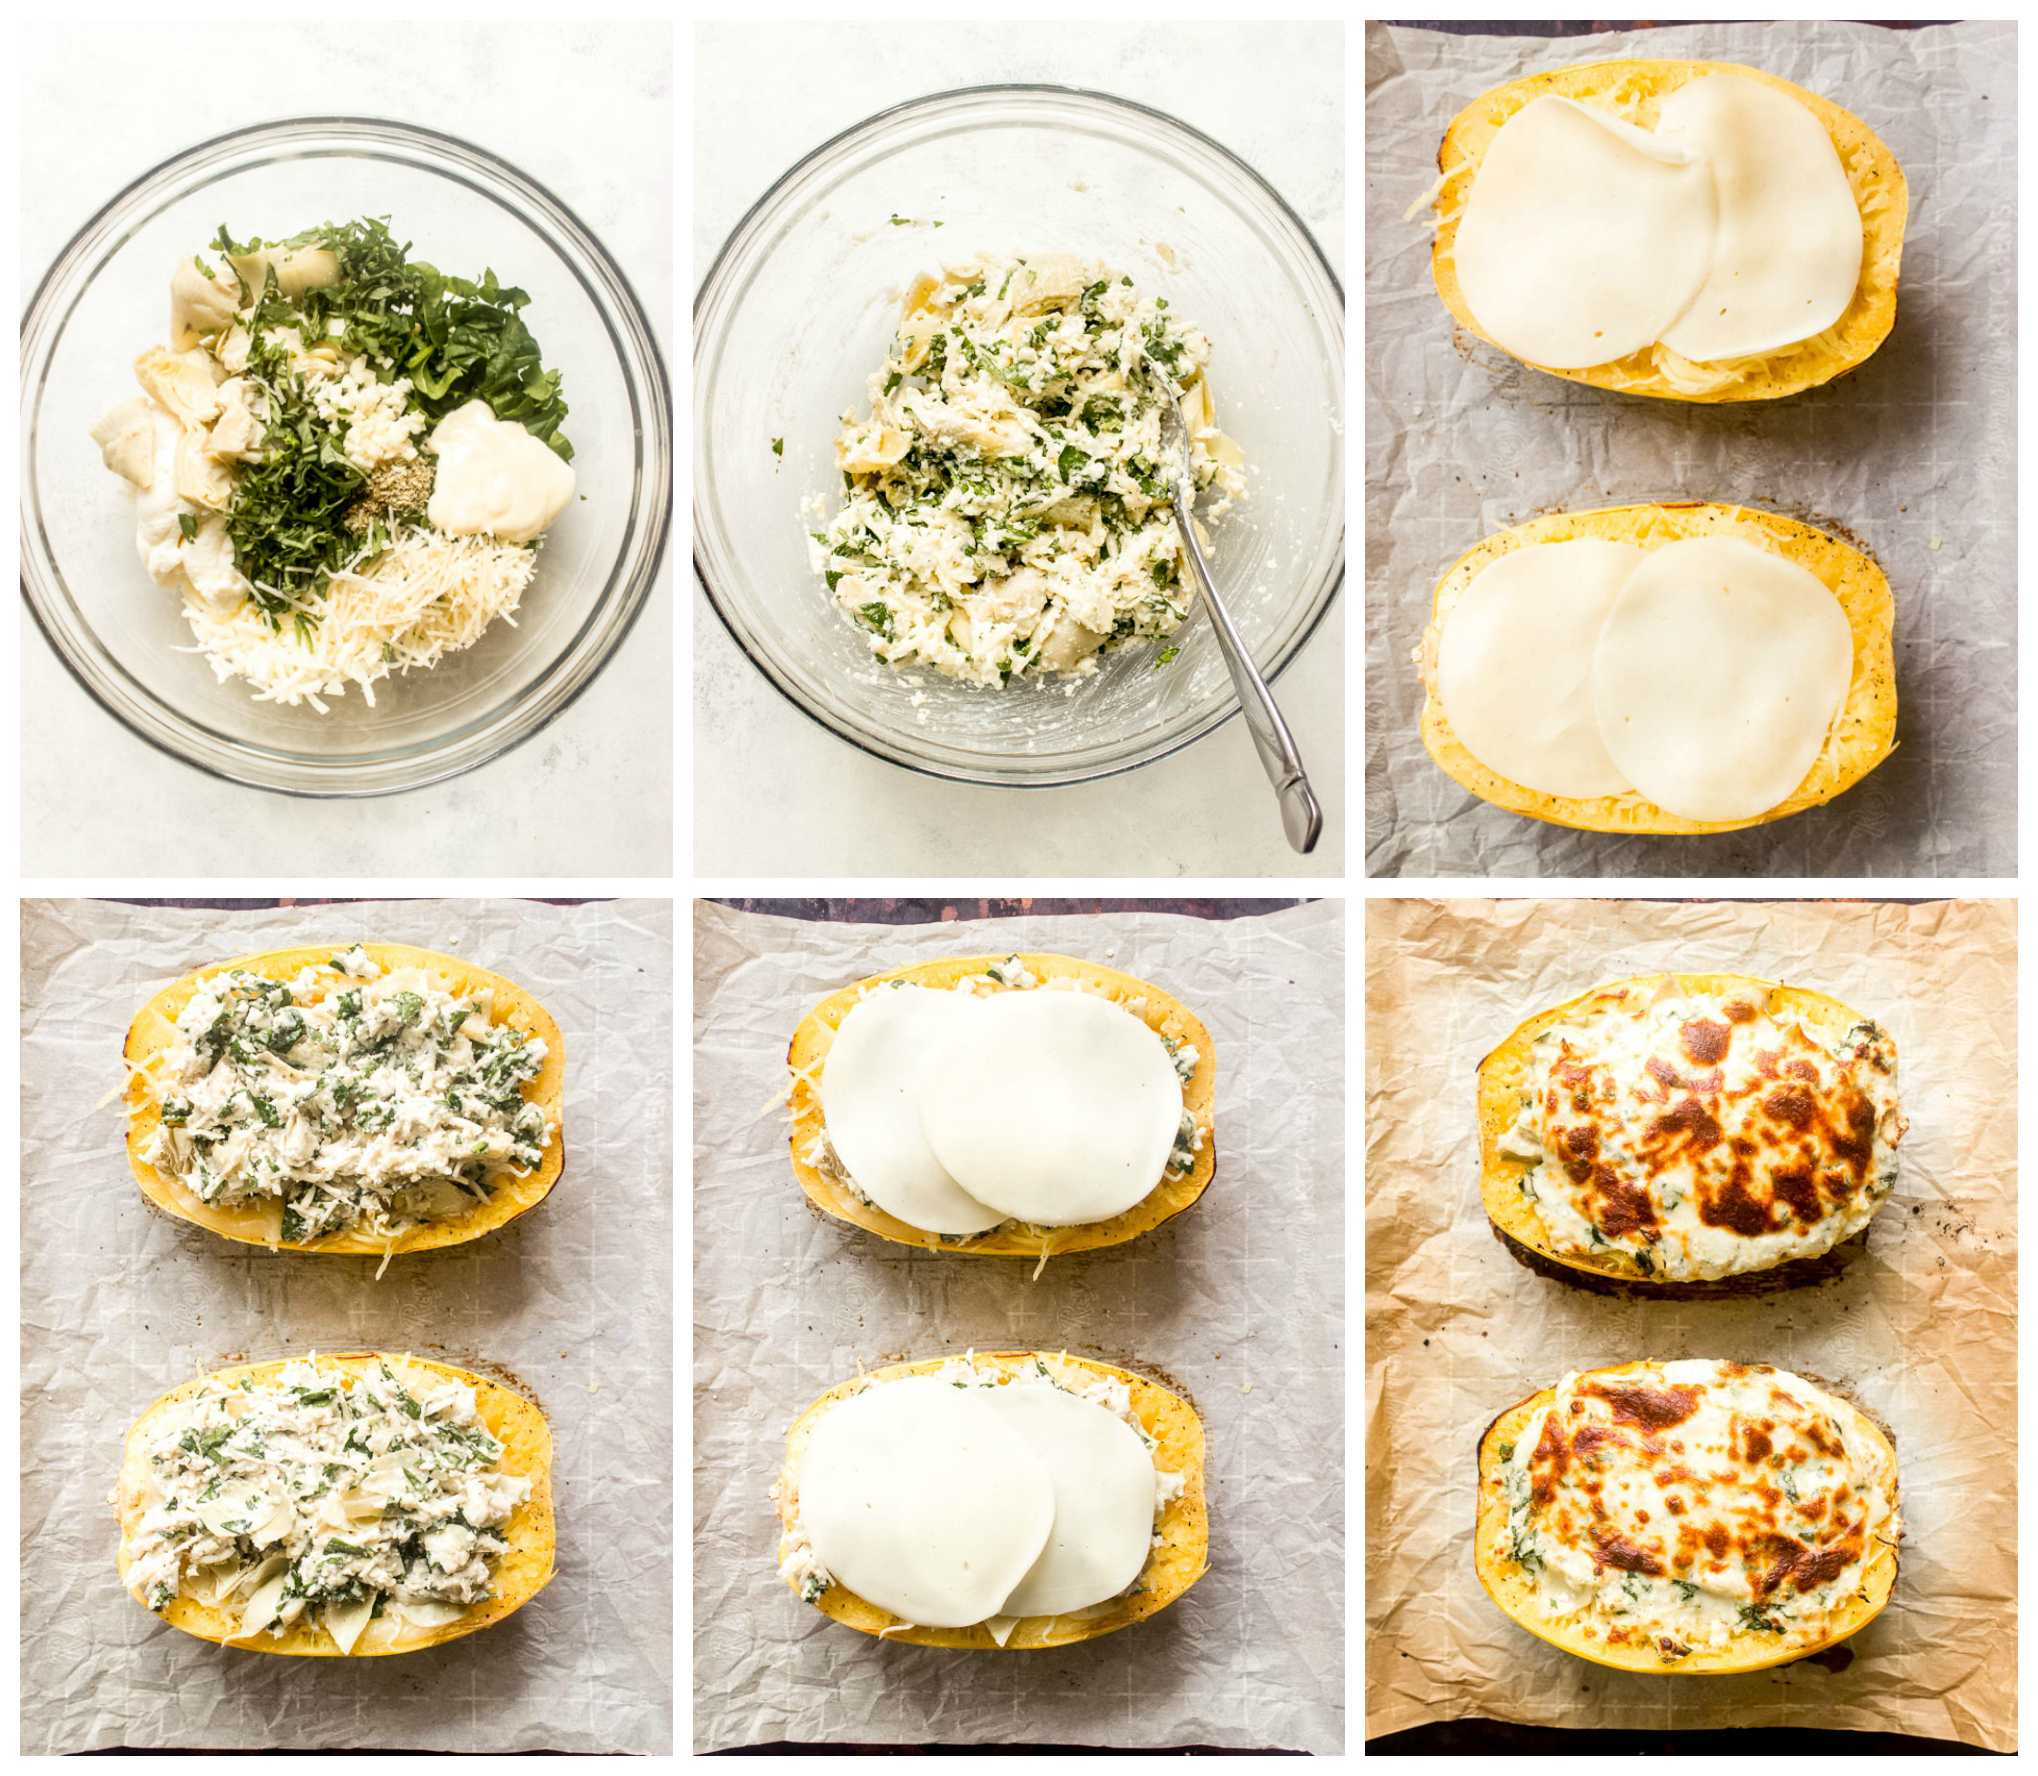 Step by step on how to bake spaghetti squash